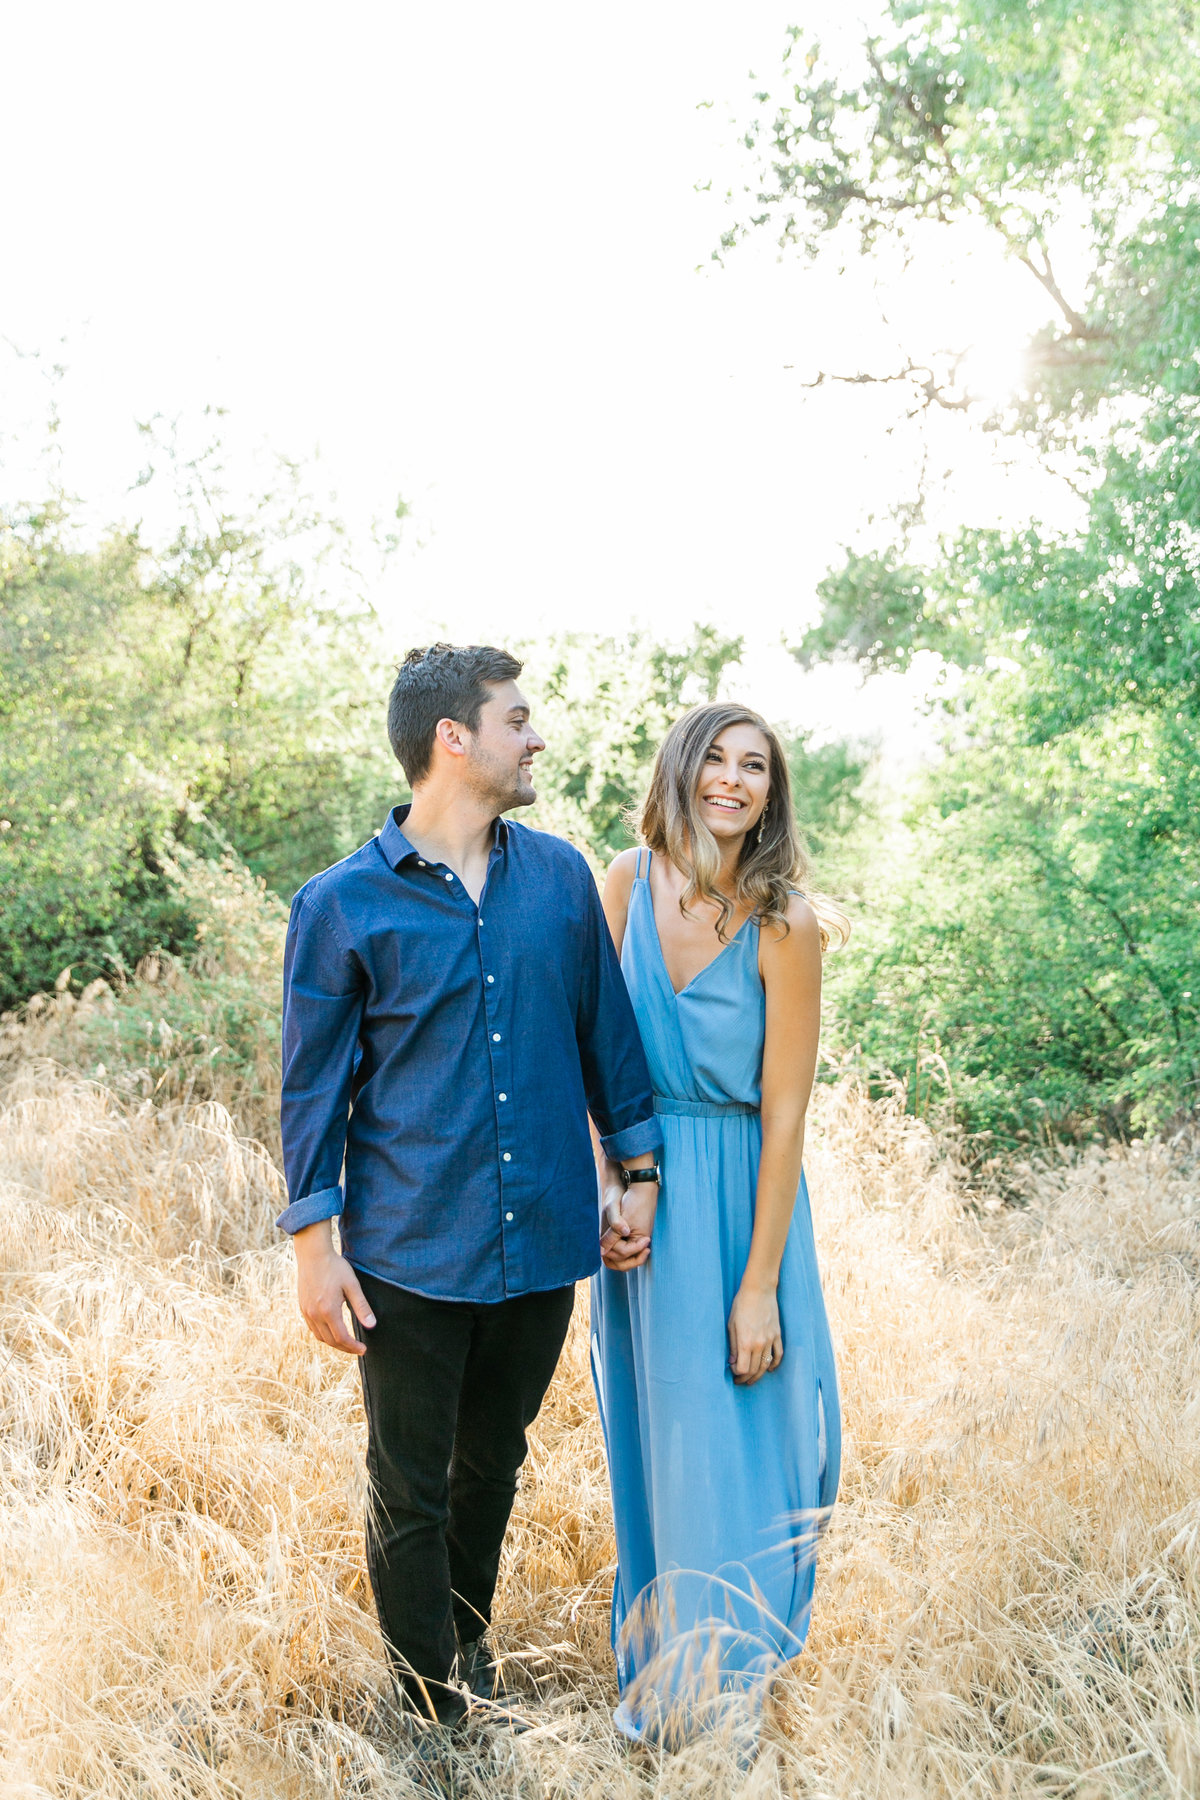 Karlie Colleen Photography - Arizona Desert Engagement - Brynne & Josh -56